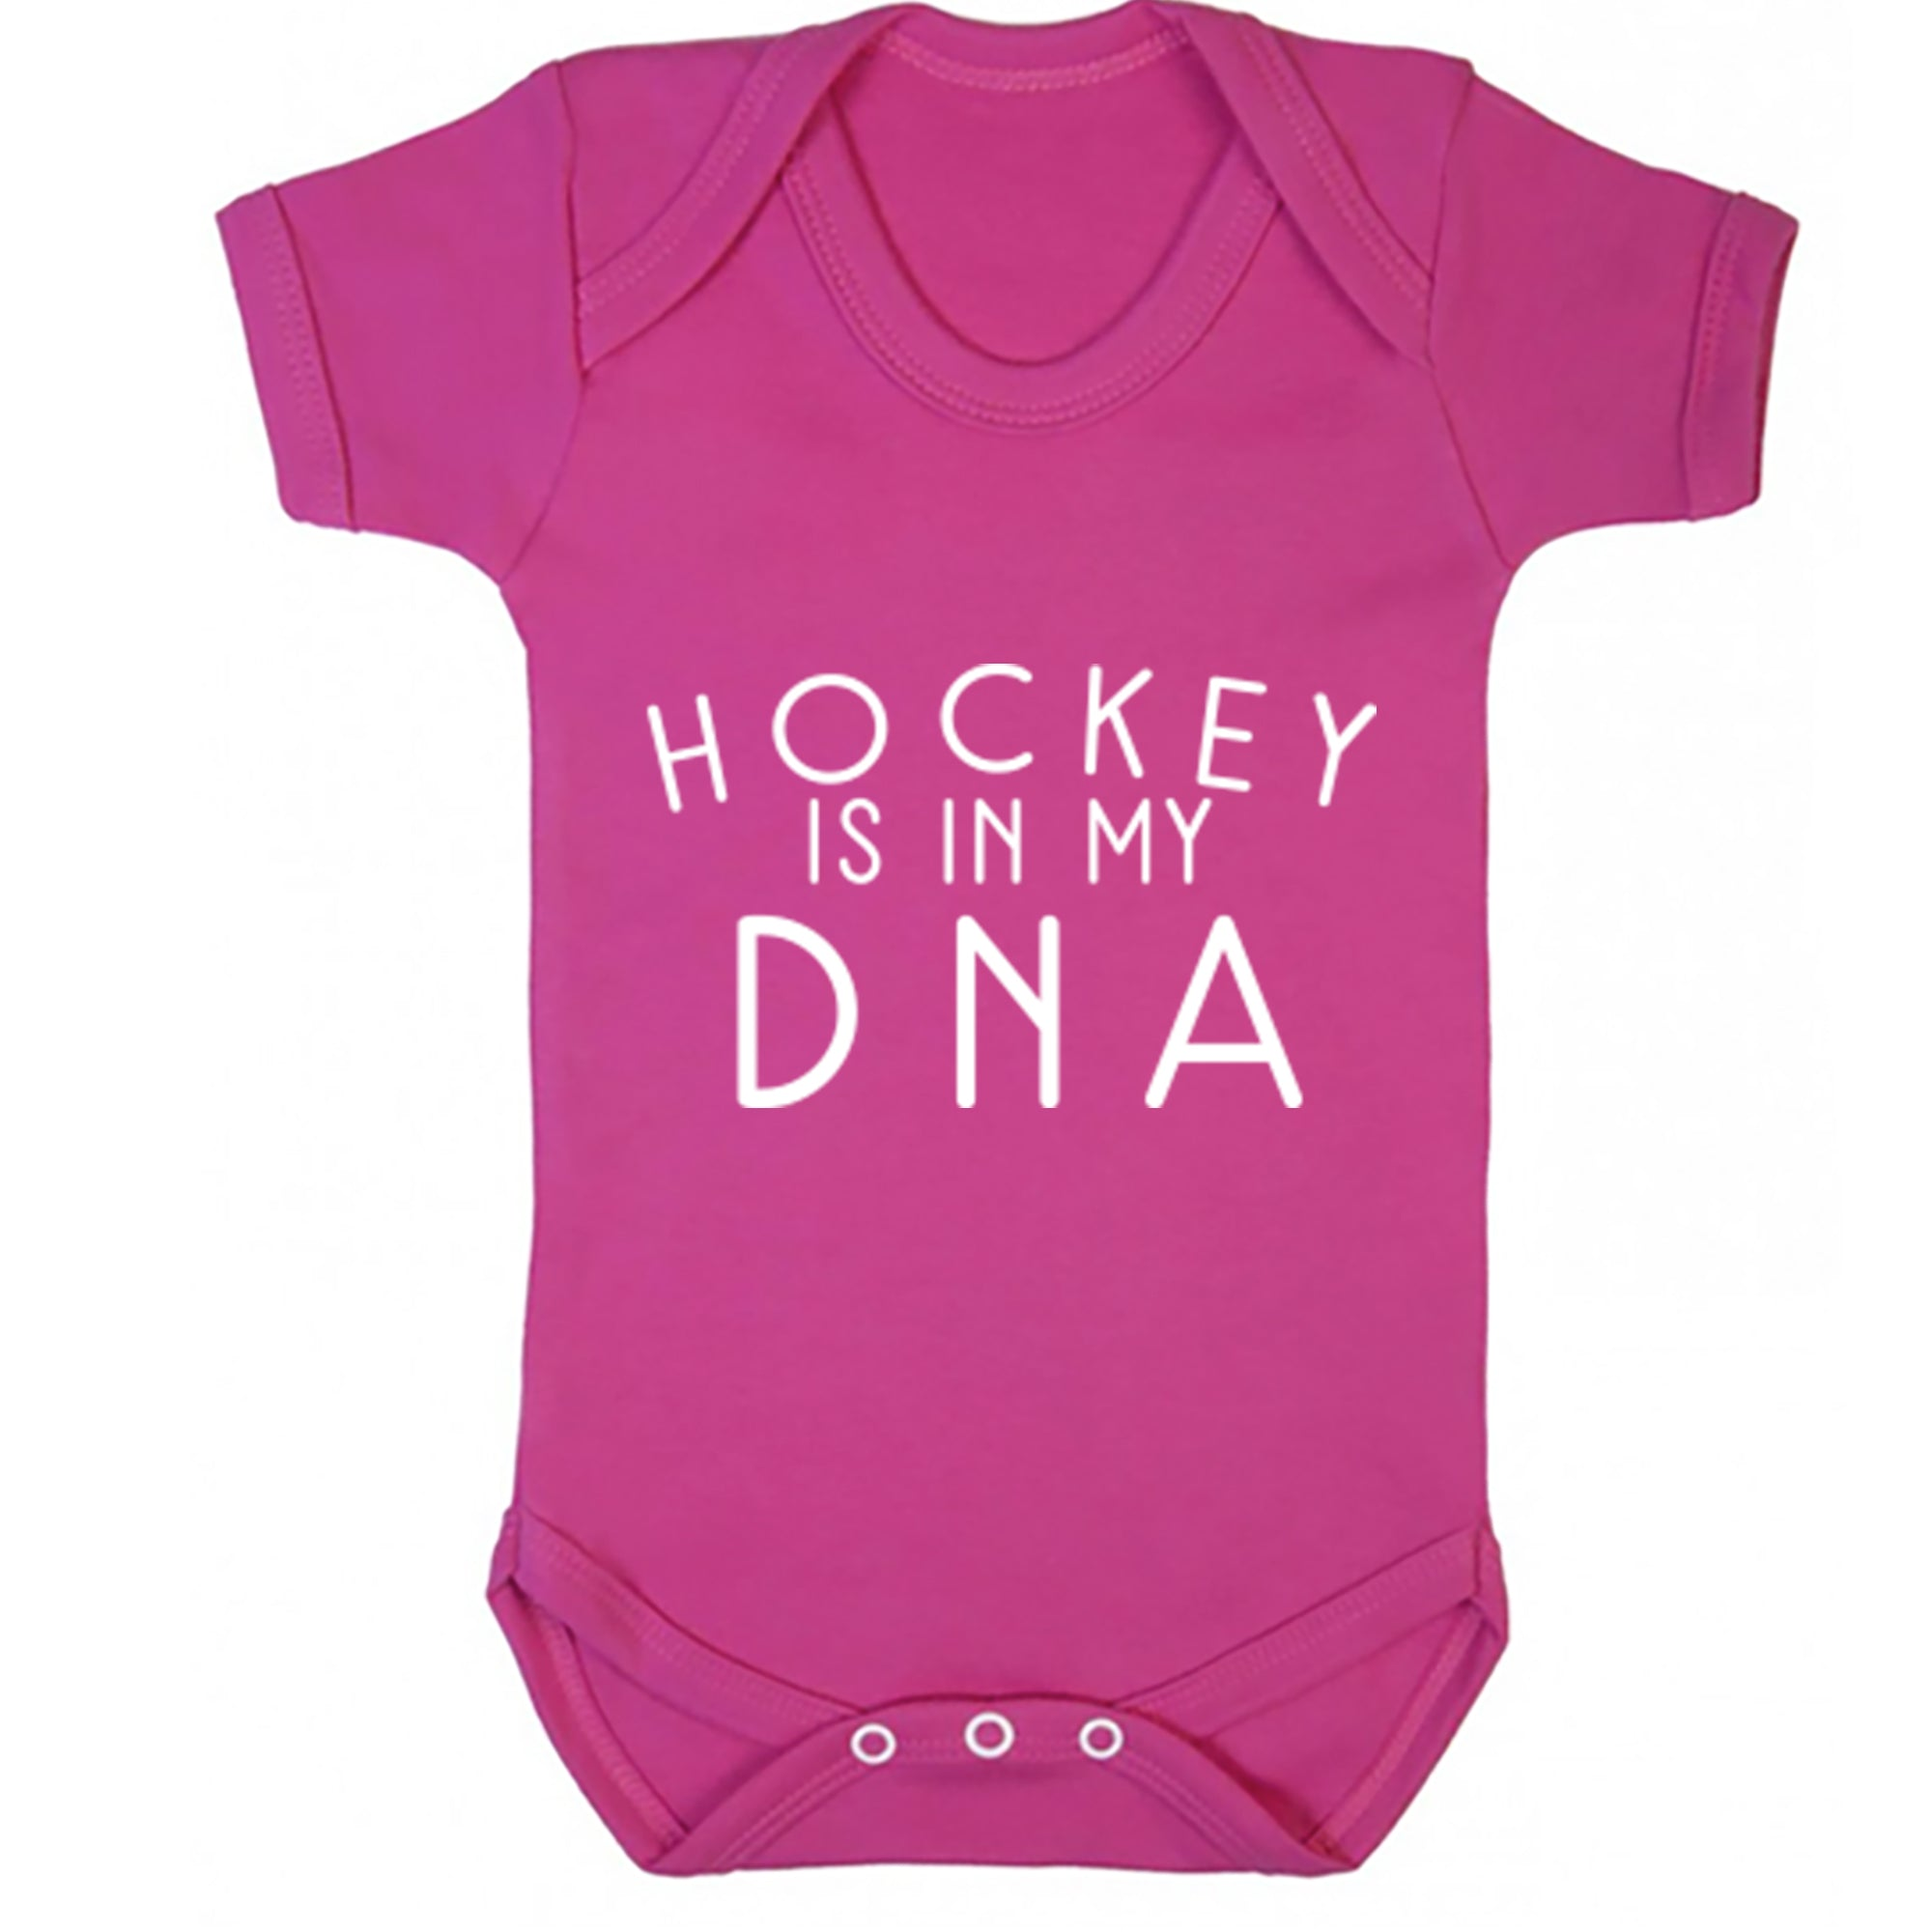 Hockey Is In My DNA Baby Vest S0692 - Illustrated Identity Ltd.